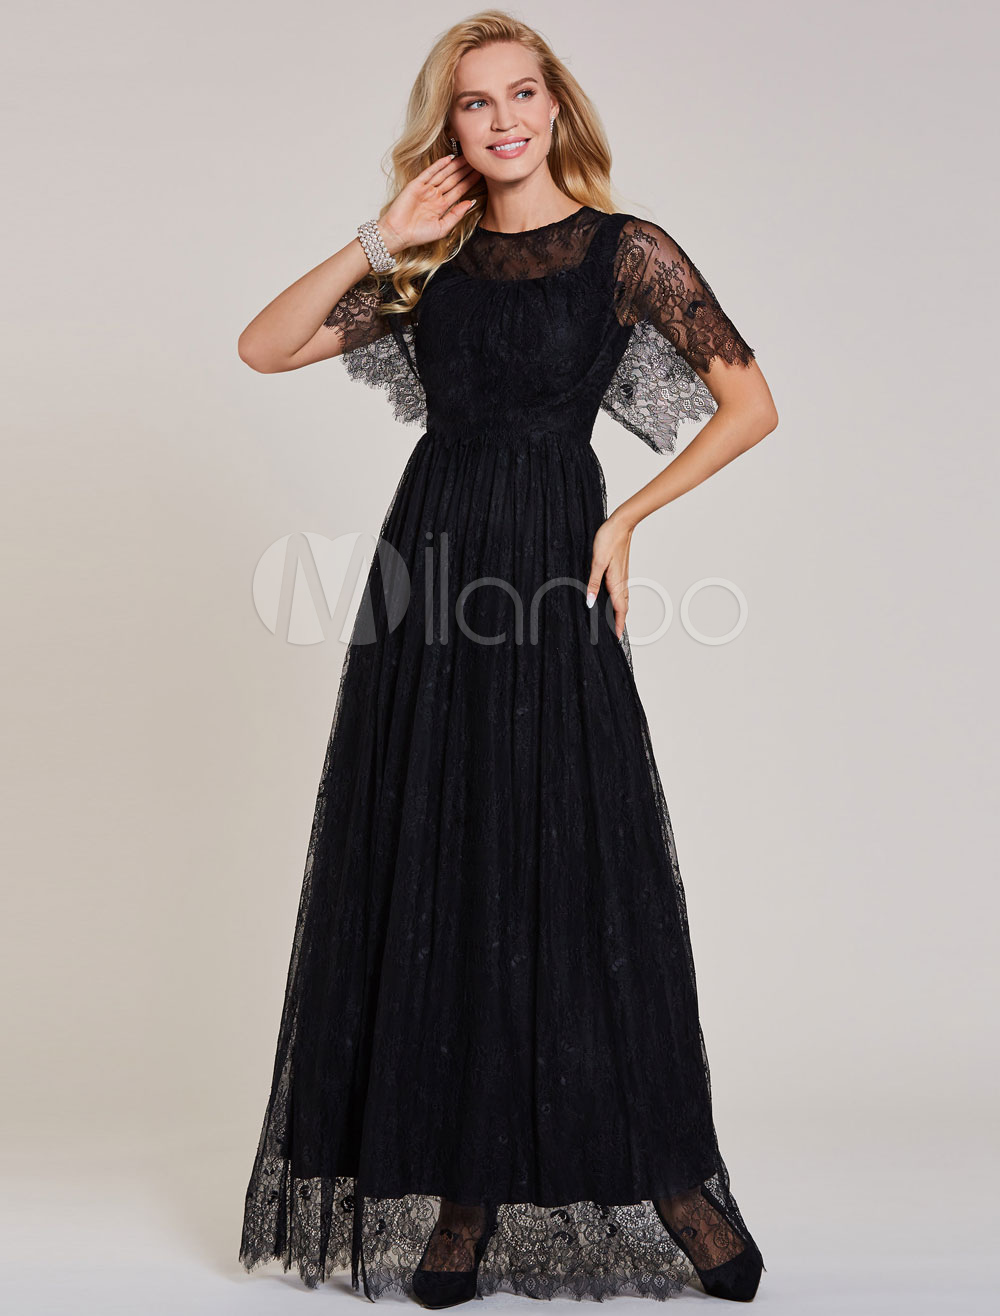 Lace Evening Dresses Black Short Sleeve Prom Dress Long Floor Length Formal Poncho Cape Dress